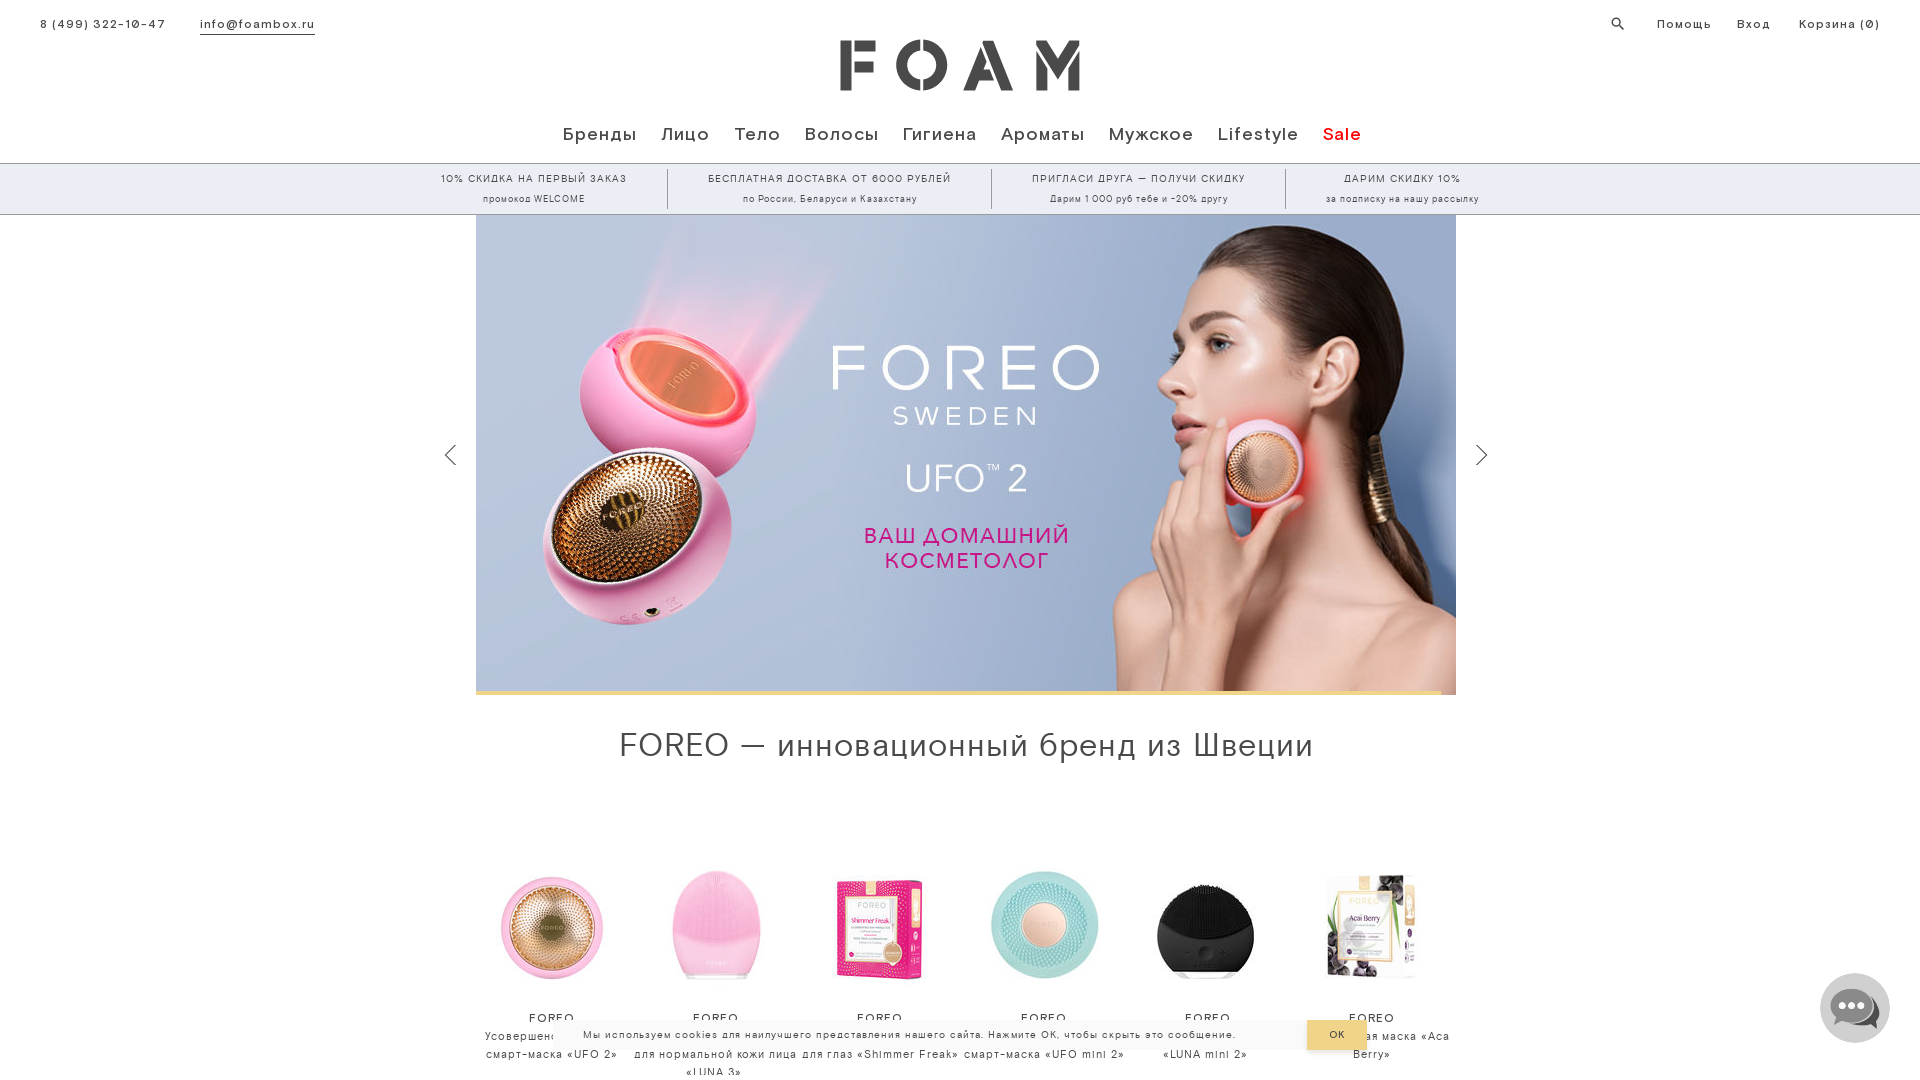 Foambox website